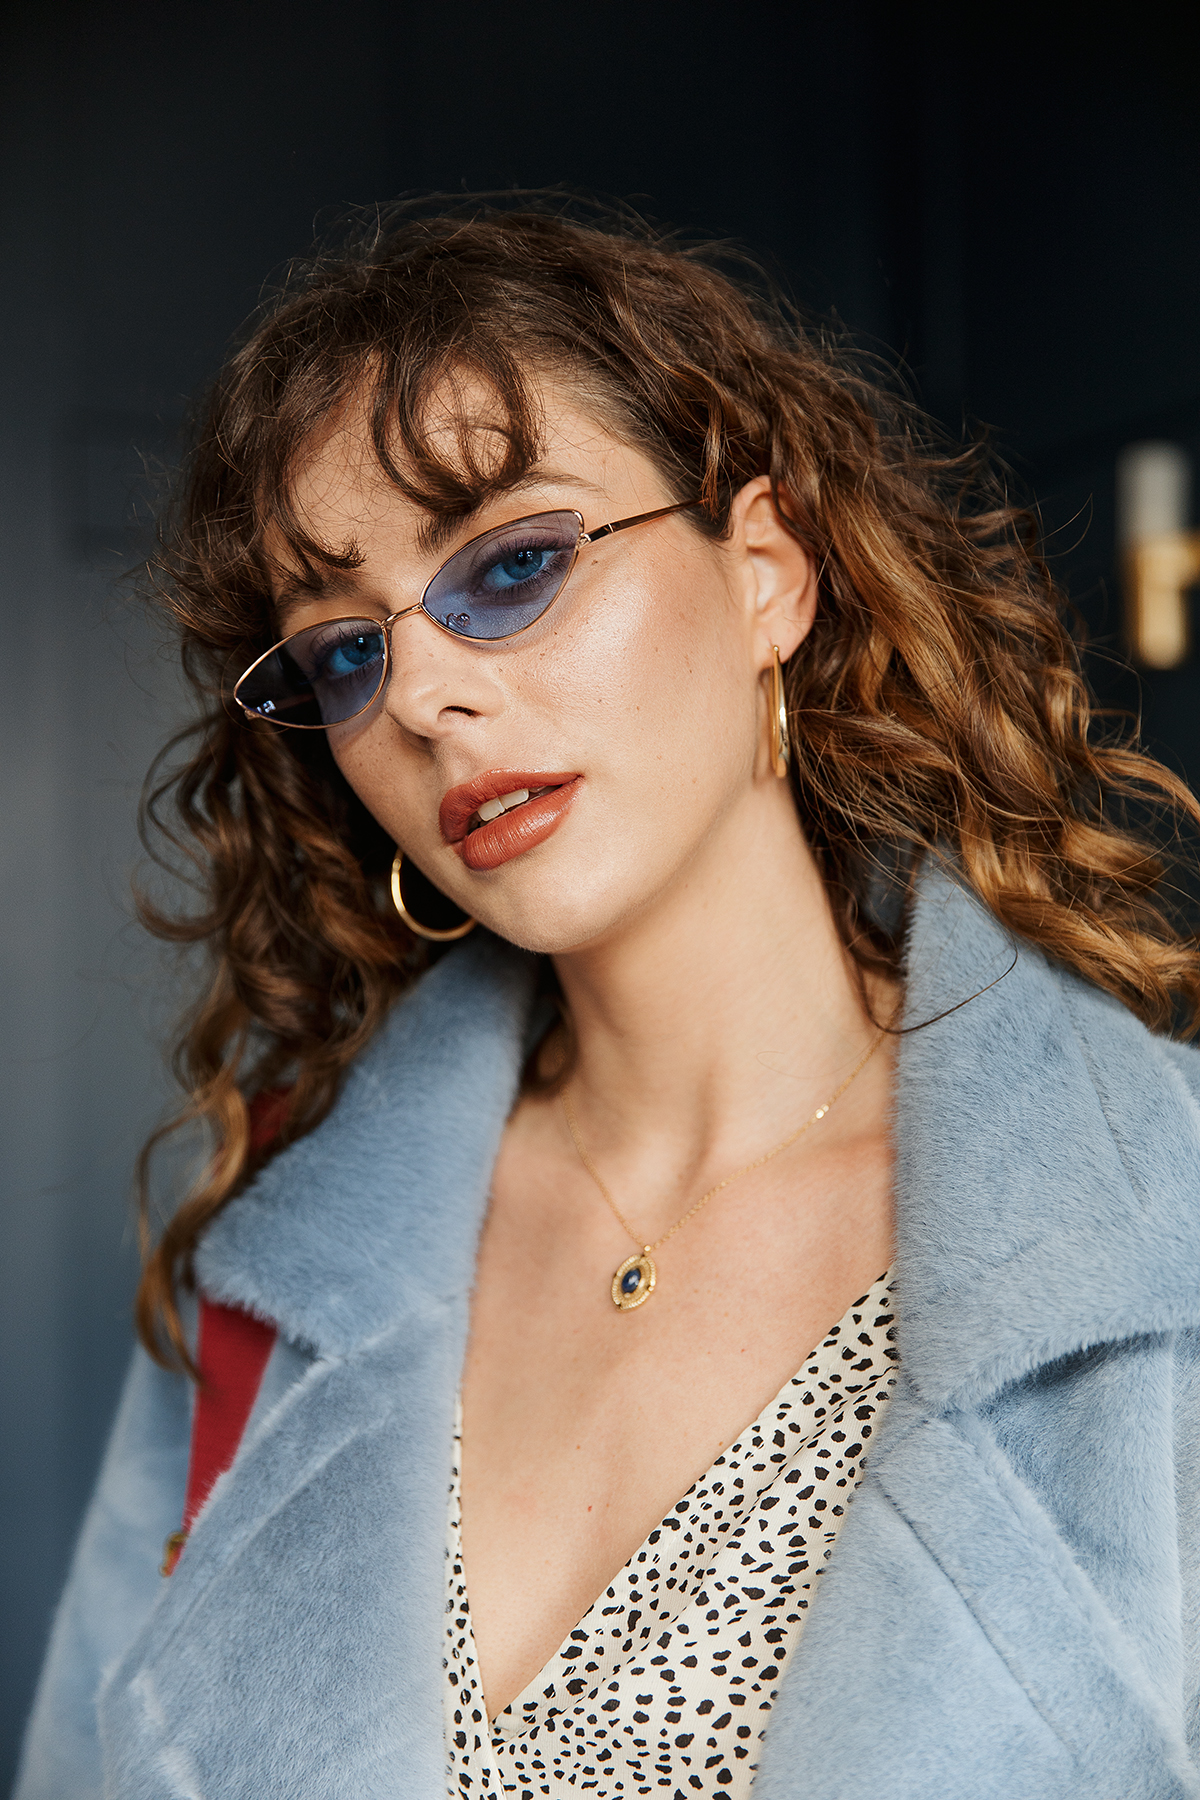 Sugar + Style fashion lookbook and e-com AW 2019. Funky portrait of model Alexandra in blue tinted sunglasses. Shot by London based fashion photographer Ailera Stone